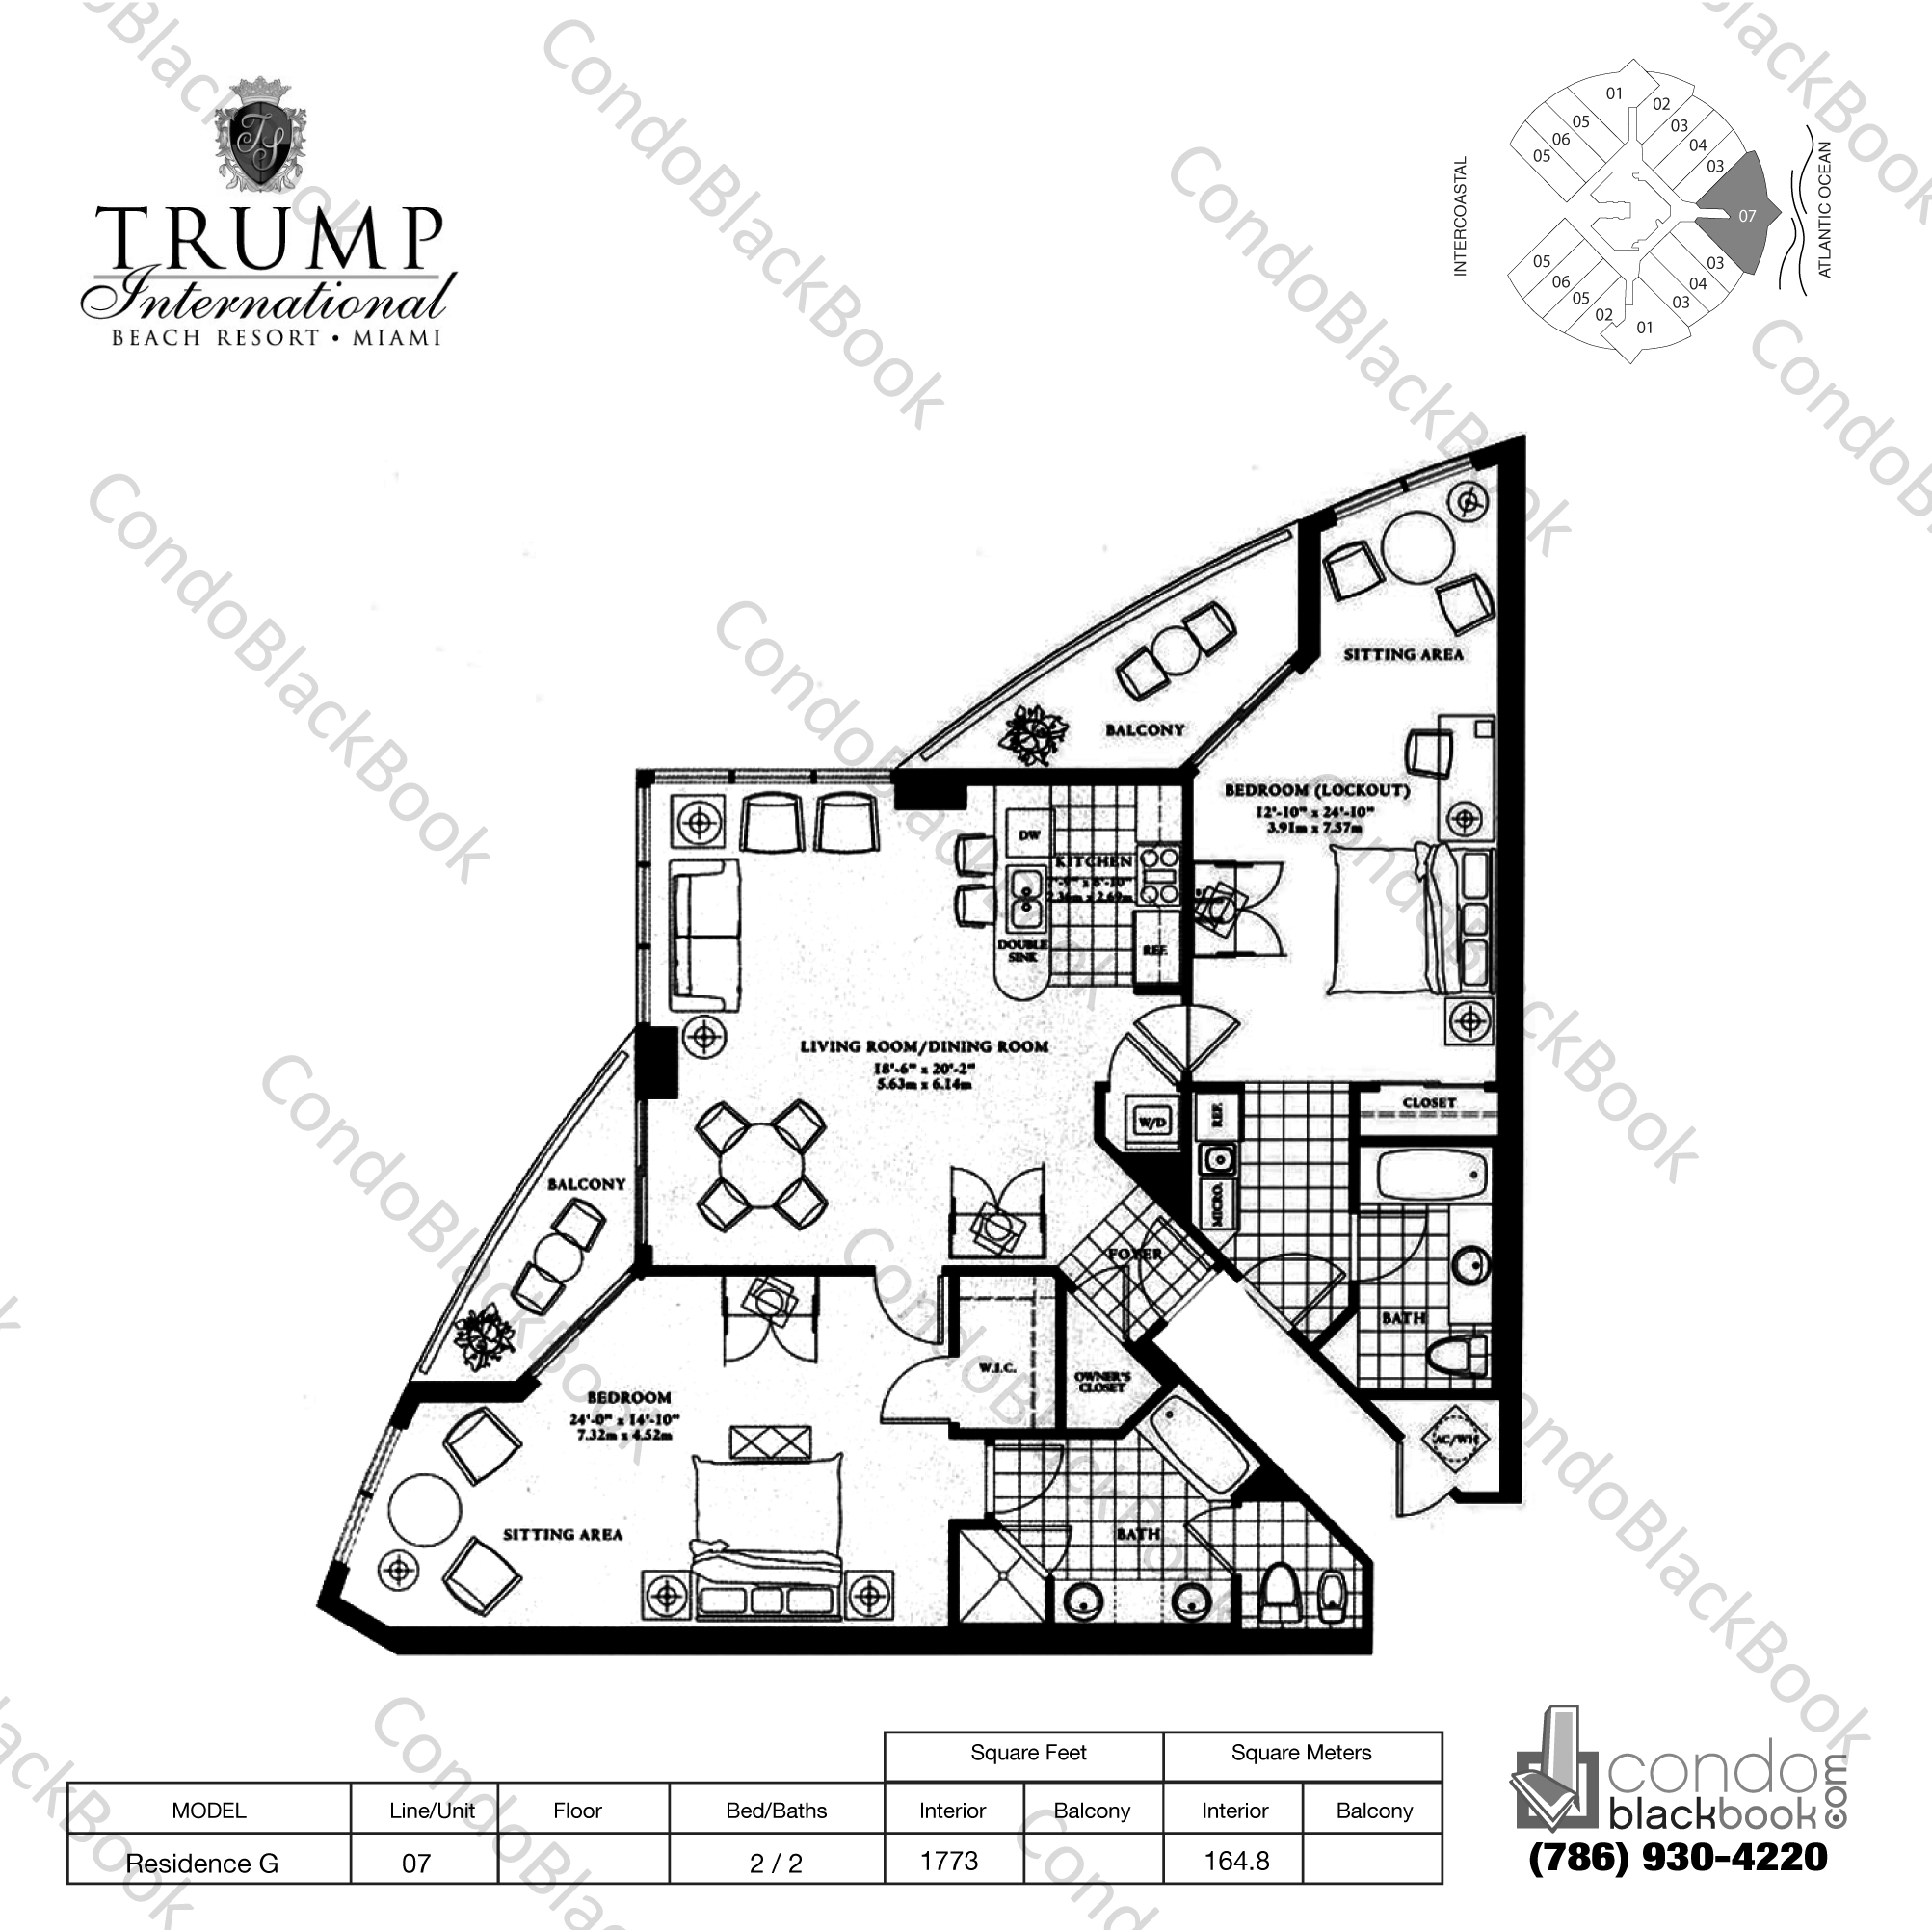 Floor plan for Trump International Sunny Isles Beach, model Residence G, line 07, 2 / 2 bedrooms, 1773 sq ft